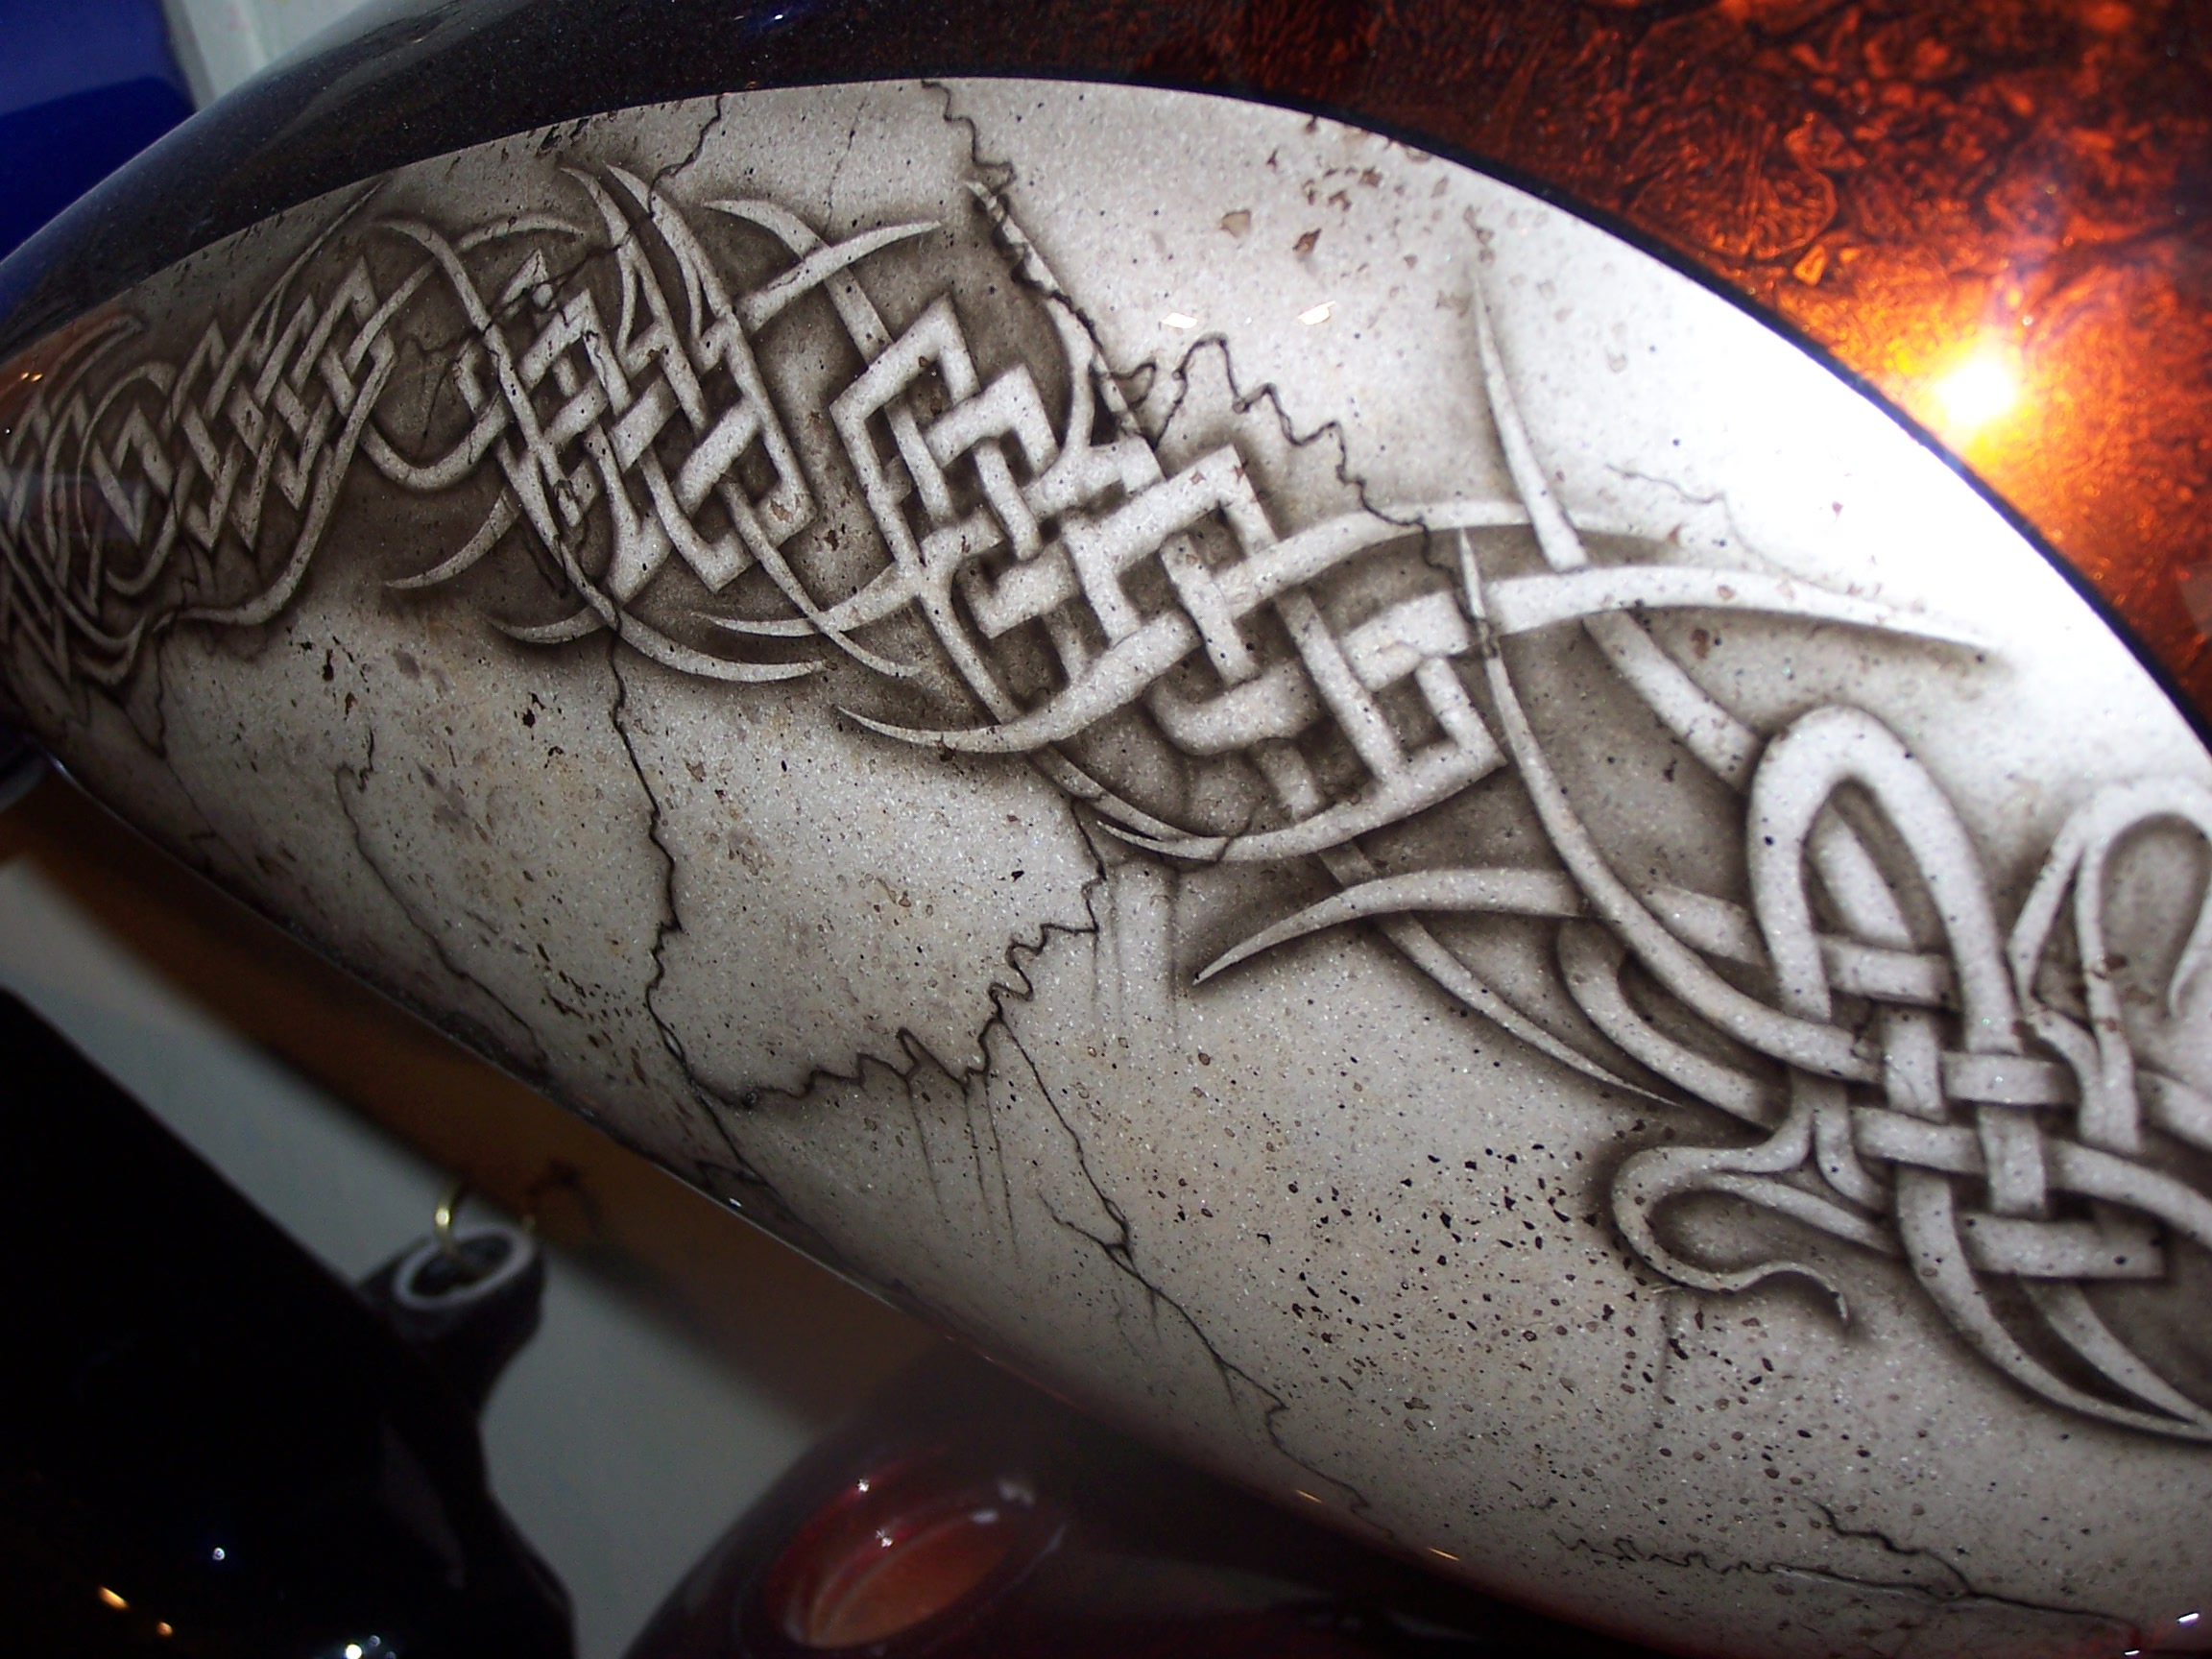 Custom Airbrush Motorcycle Helmets Pictures Picture Pictures : celtic 1000955 Helmet Design <strong>for Tribal</strong> from www.tattoopinners.com size 2304 x 1728 jpeg 792kB